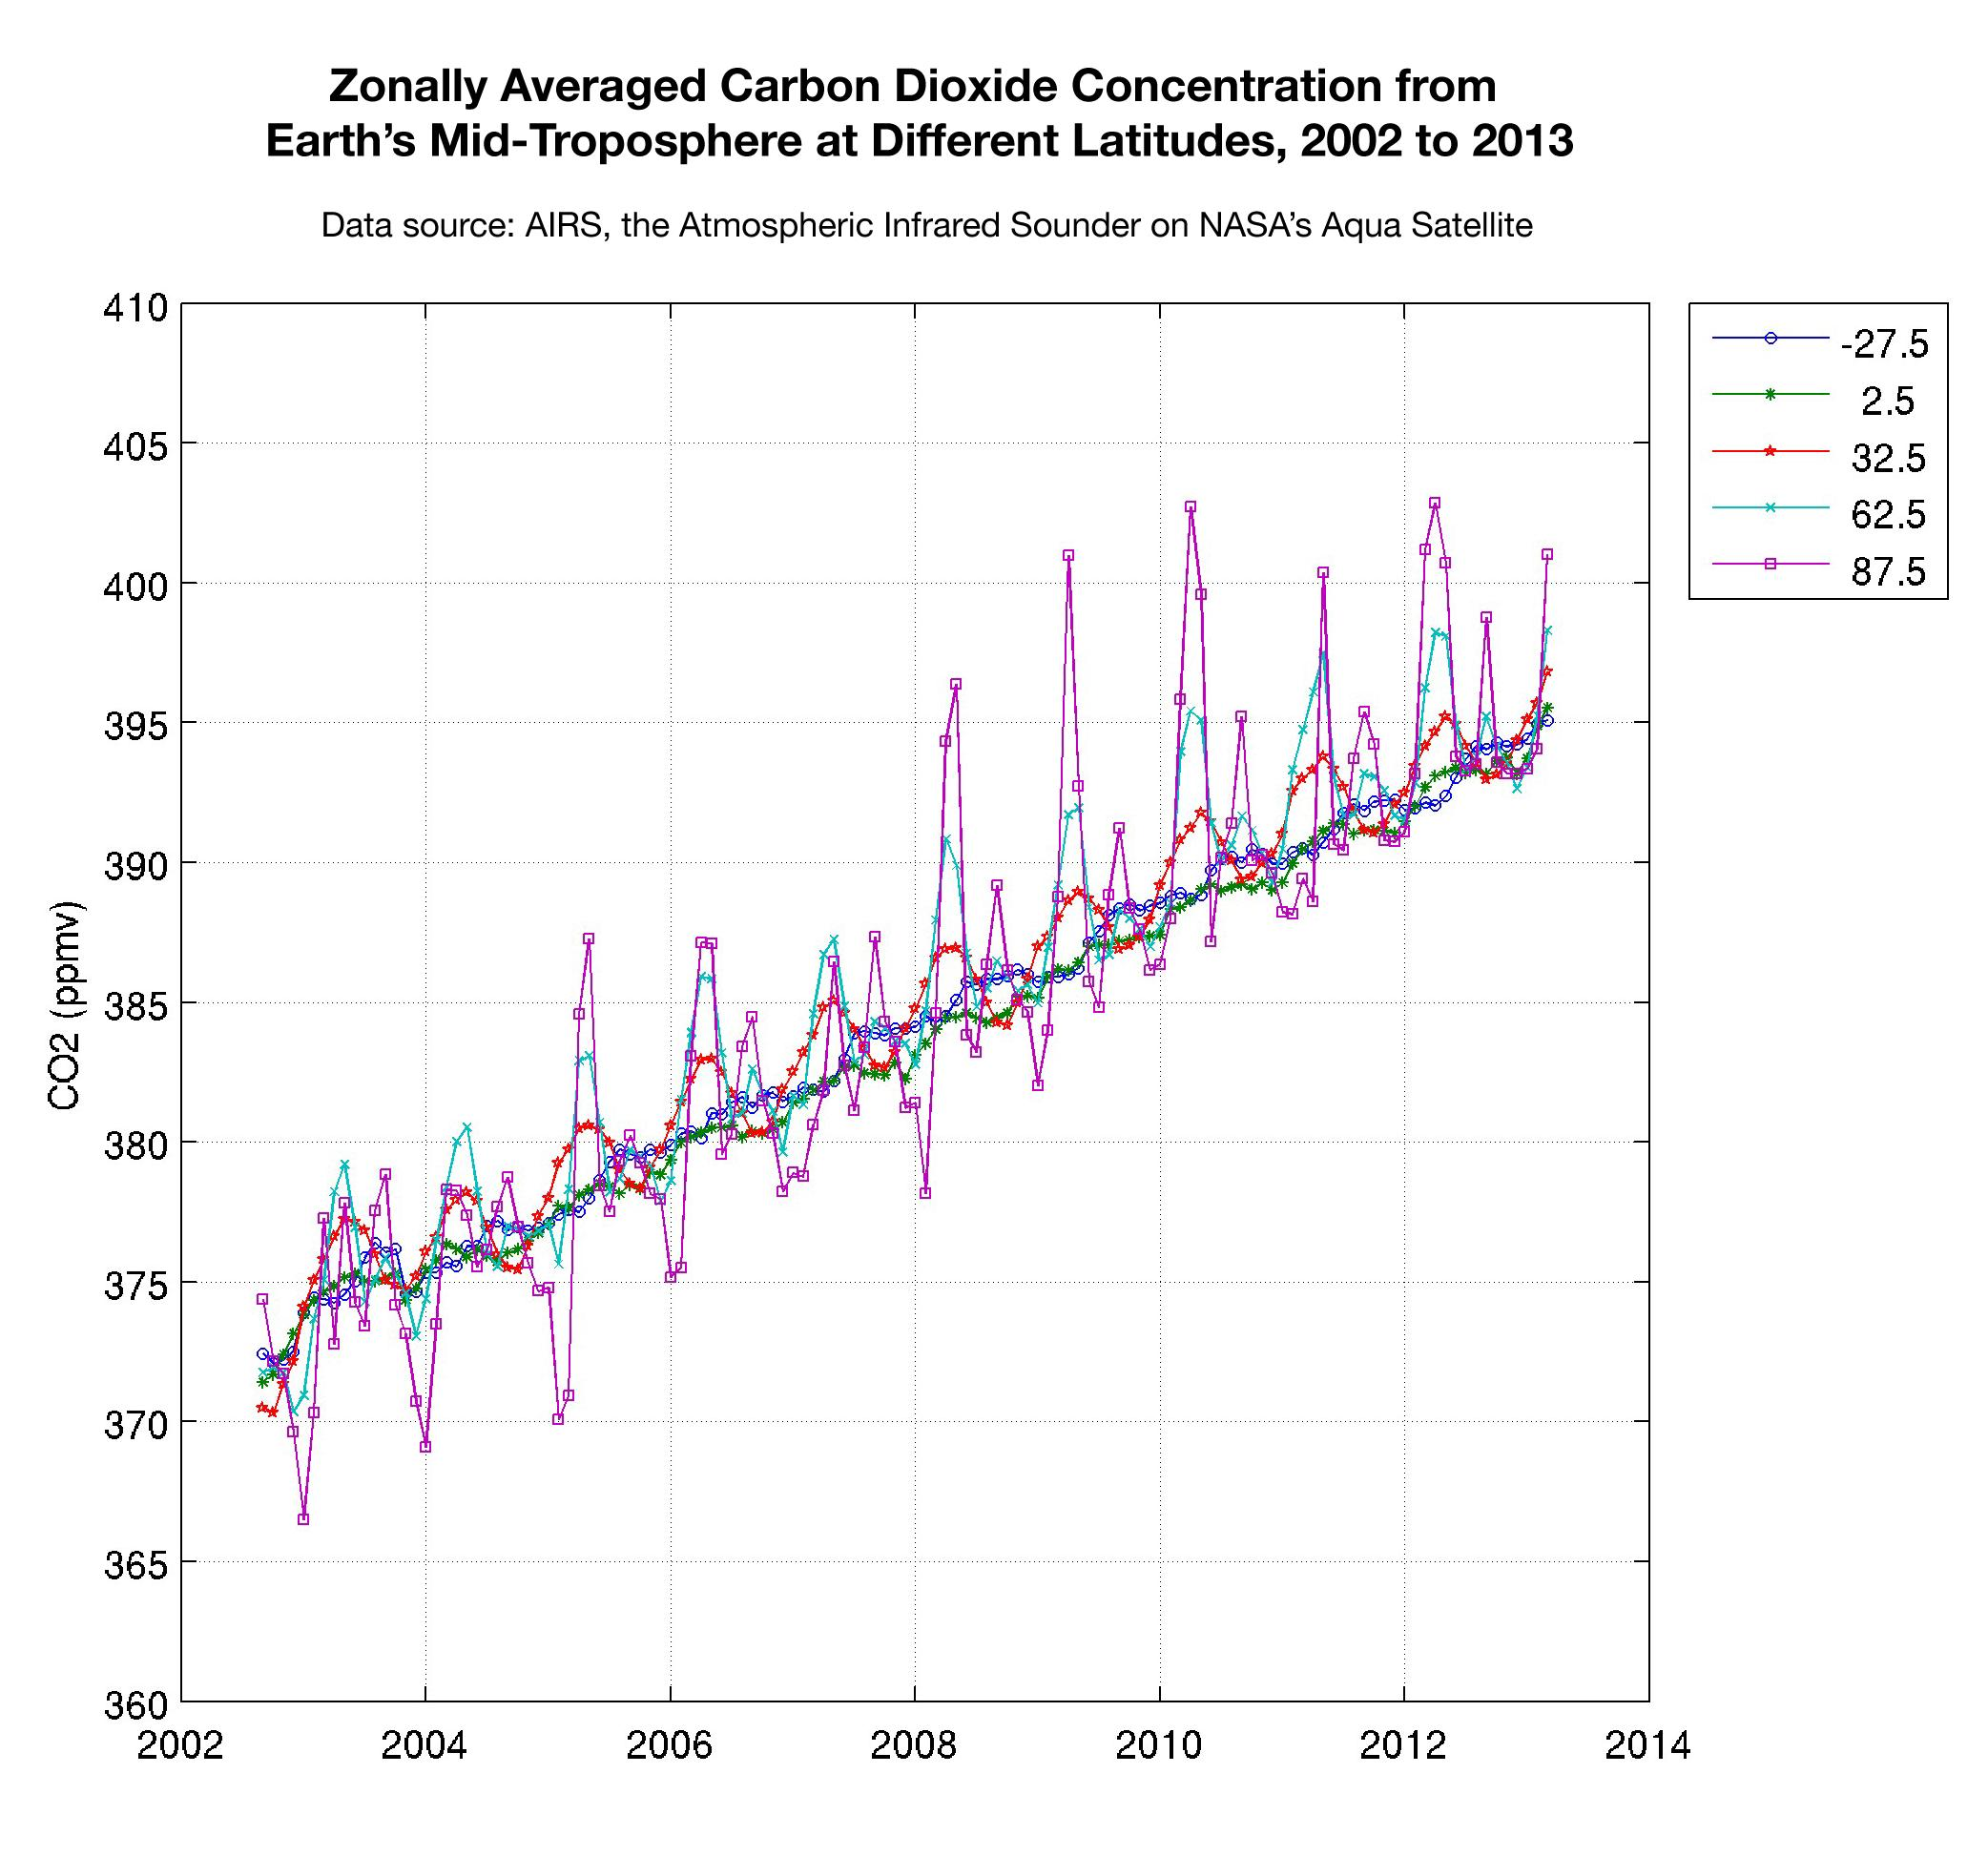 graph of zonally averaged carbon dioxide